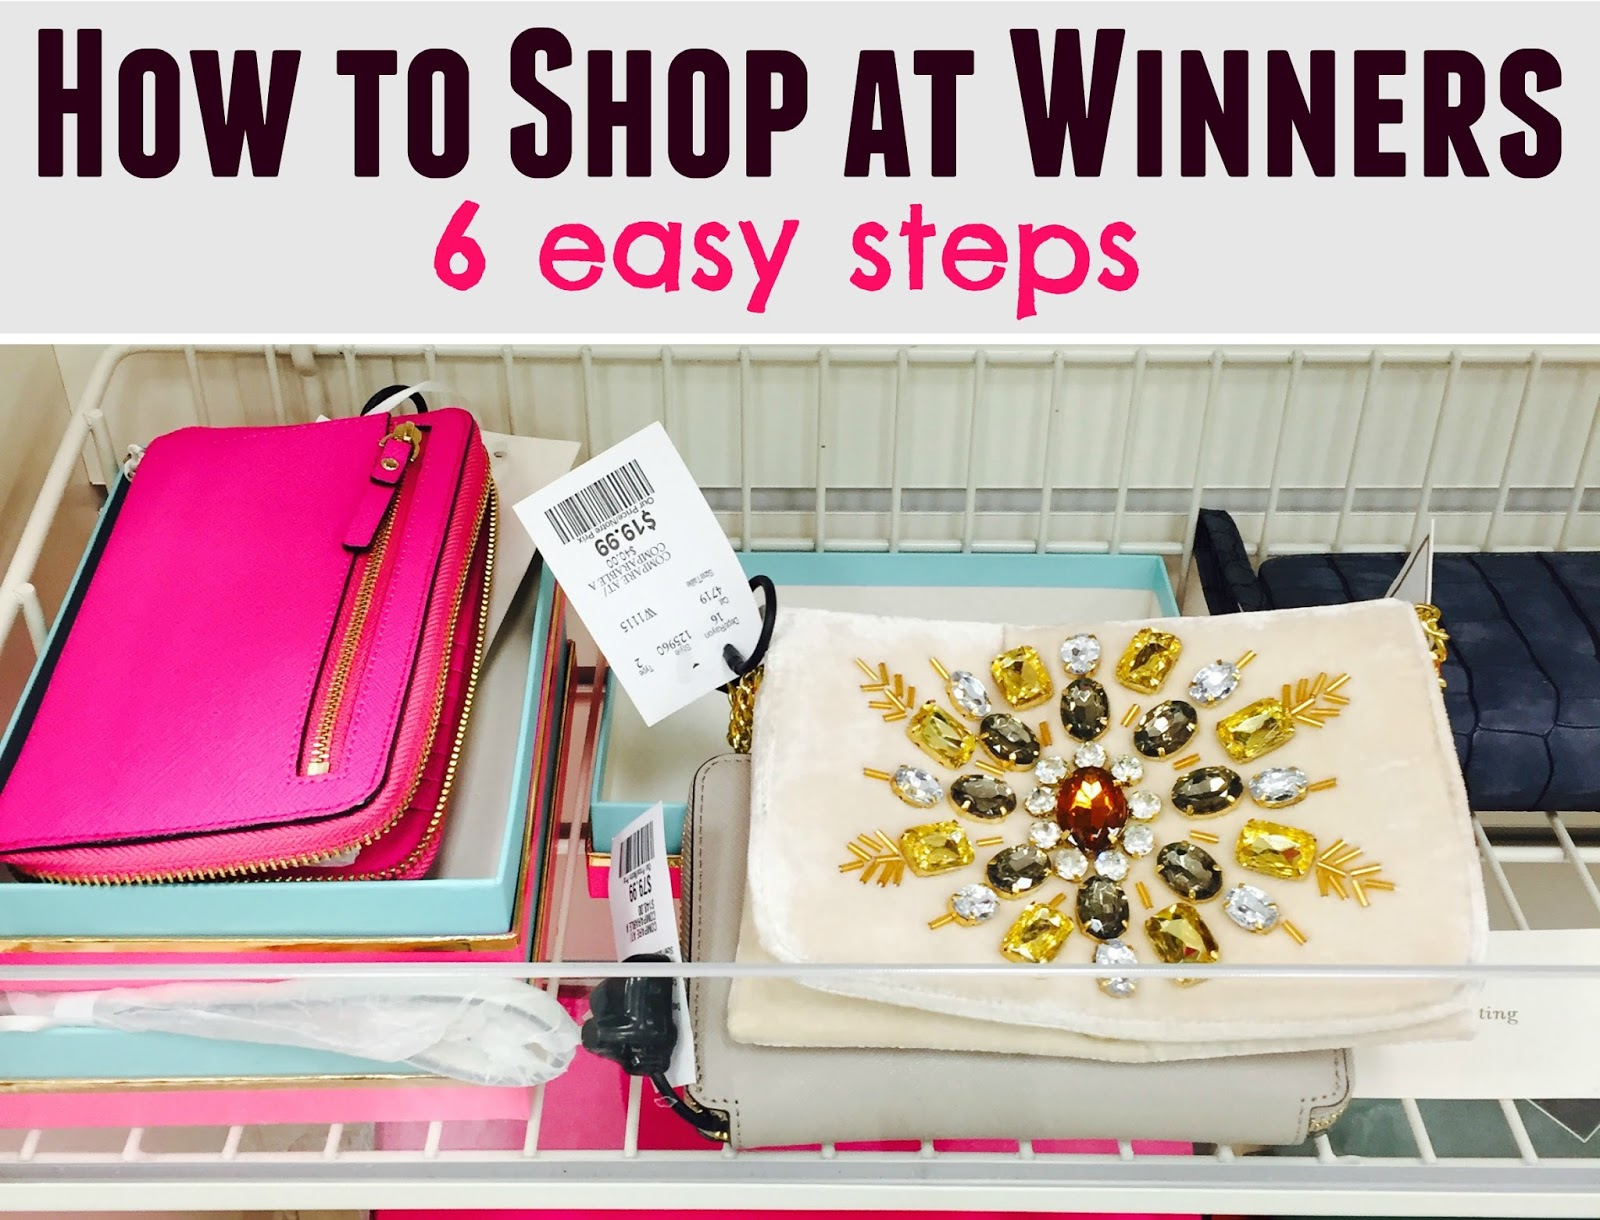 How to Shop at Winners - 6 easy and quick steps